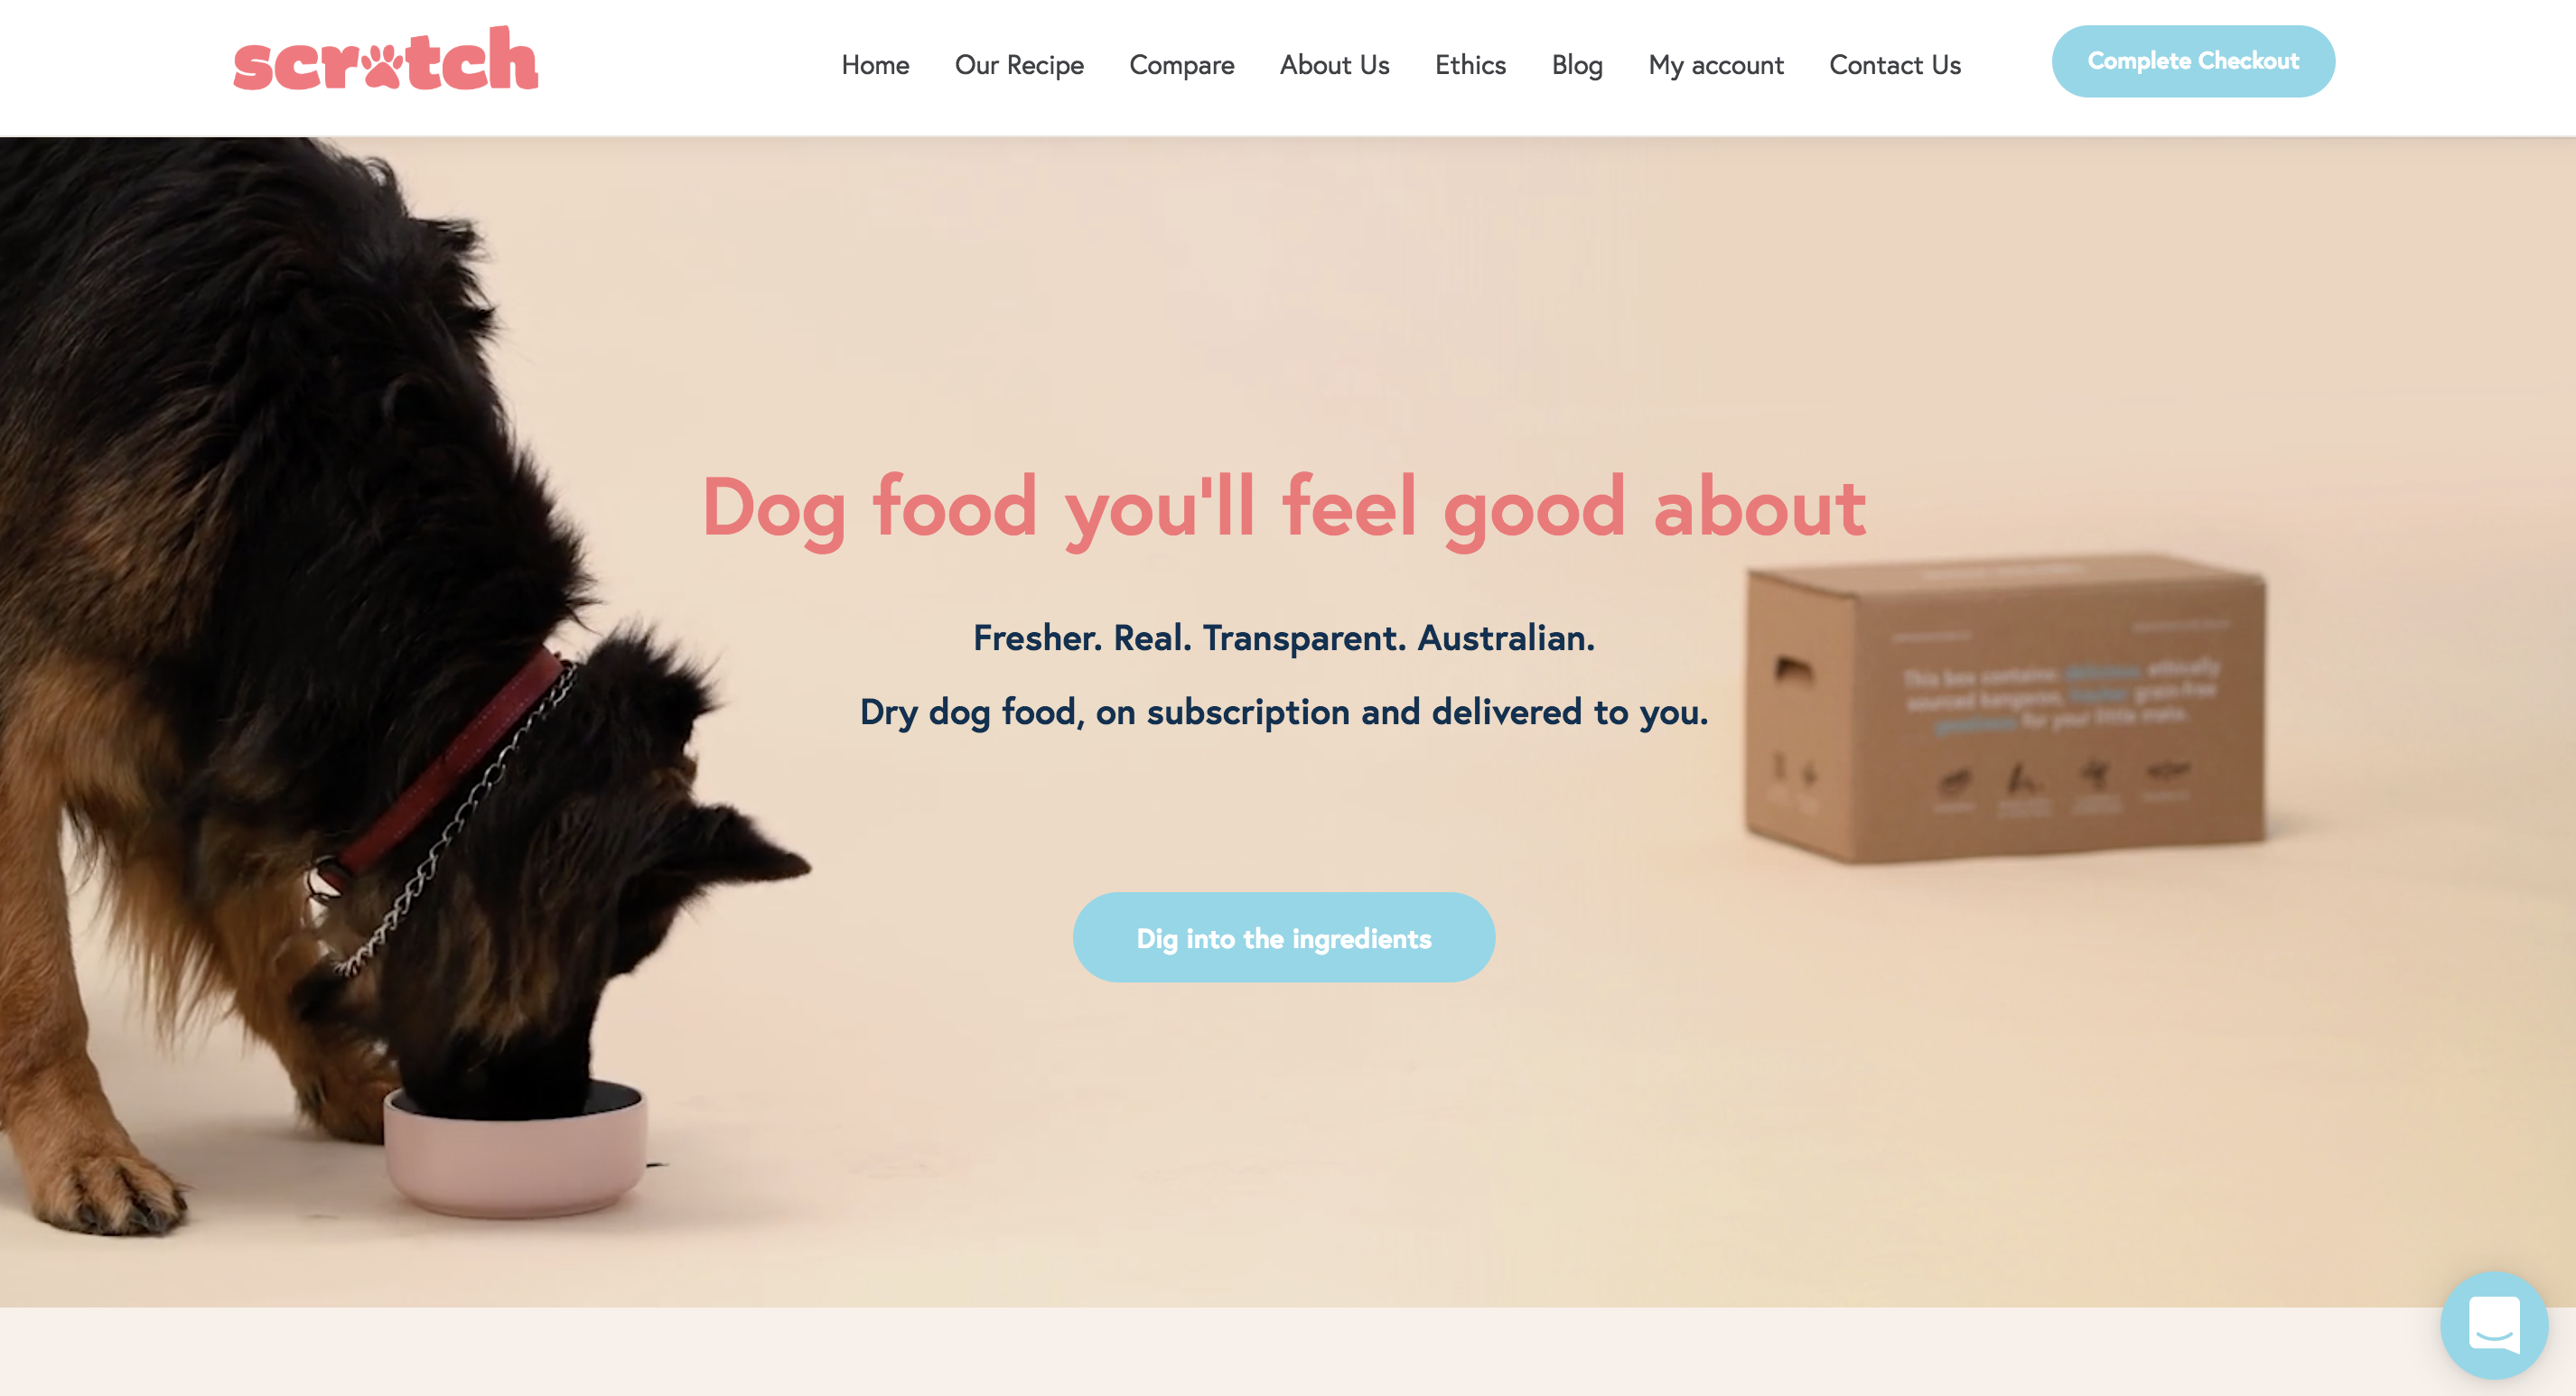 Scratch Pet Food's home page